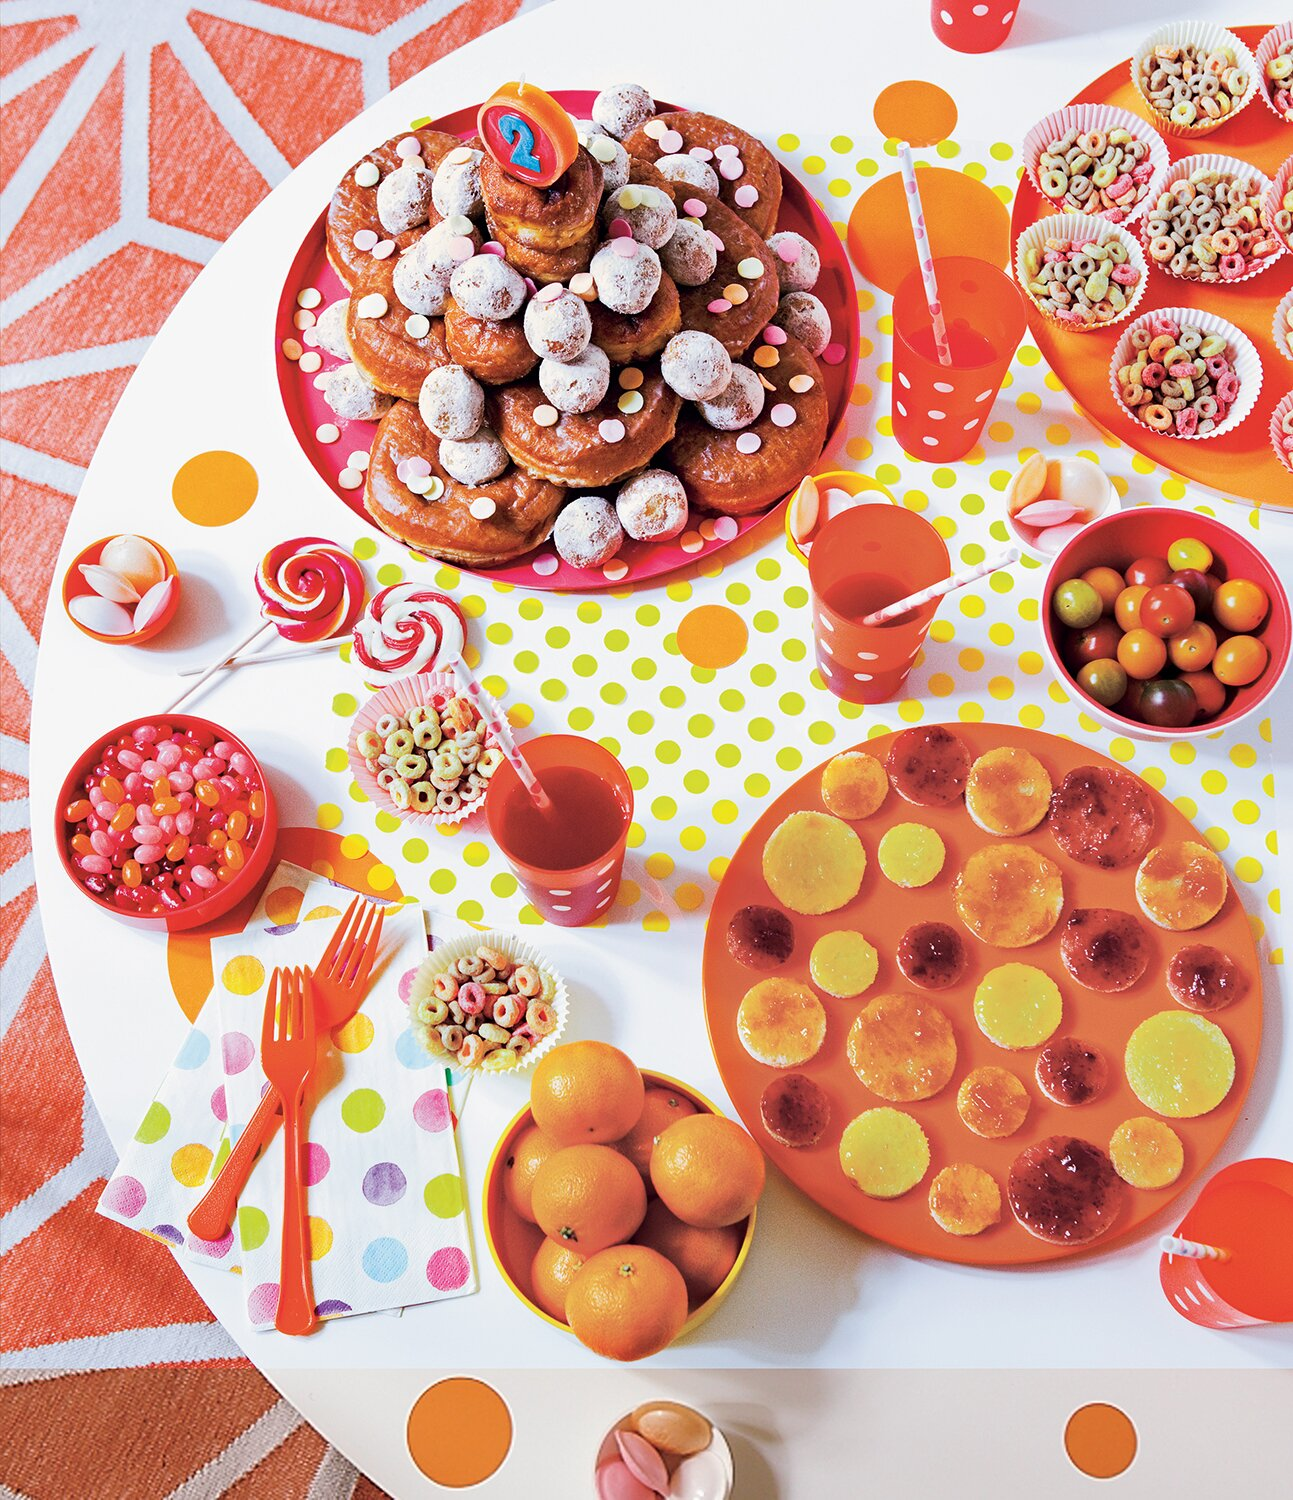 Childrens Party Spread With Circle Foods And Treats